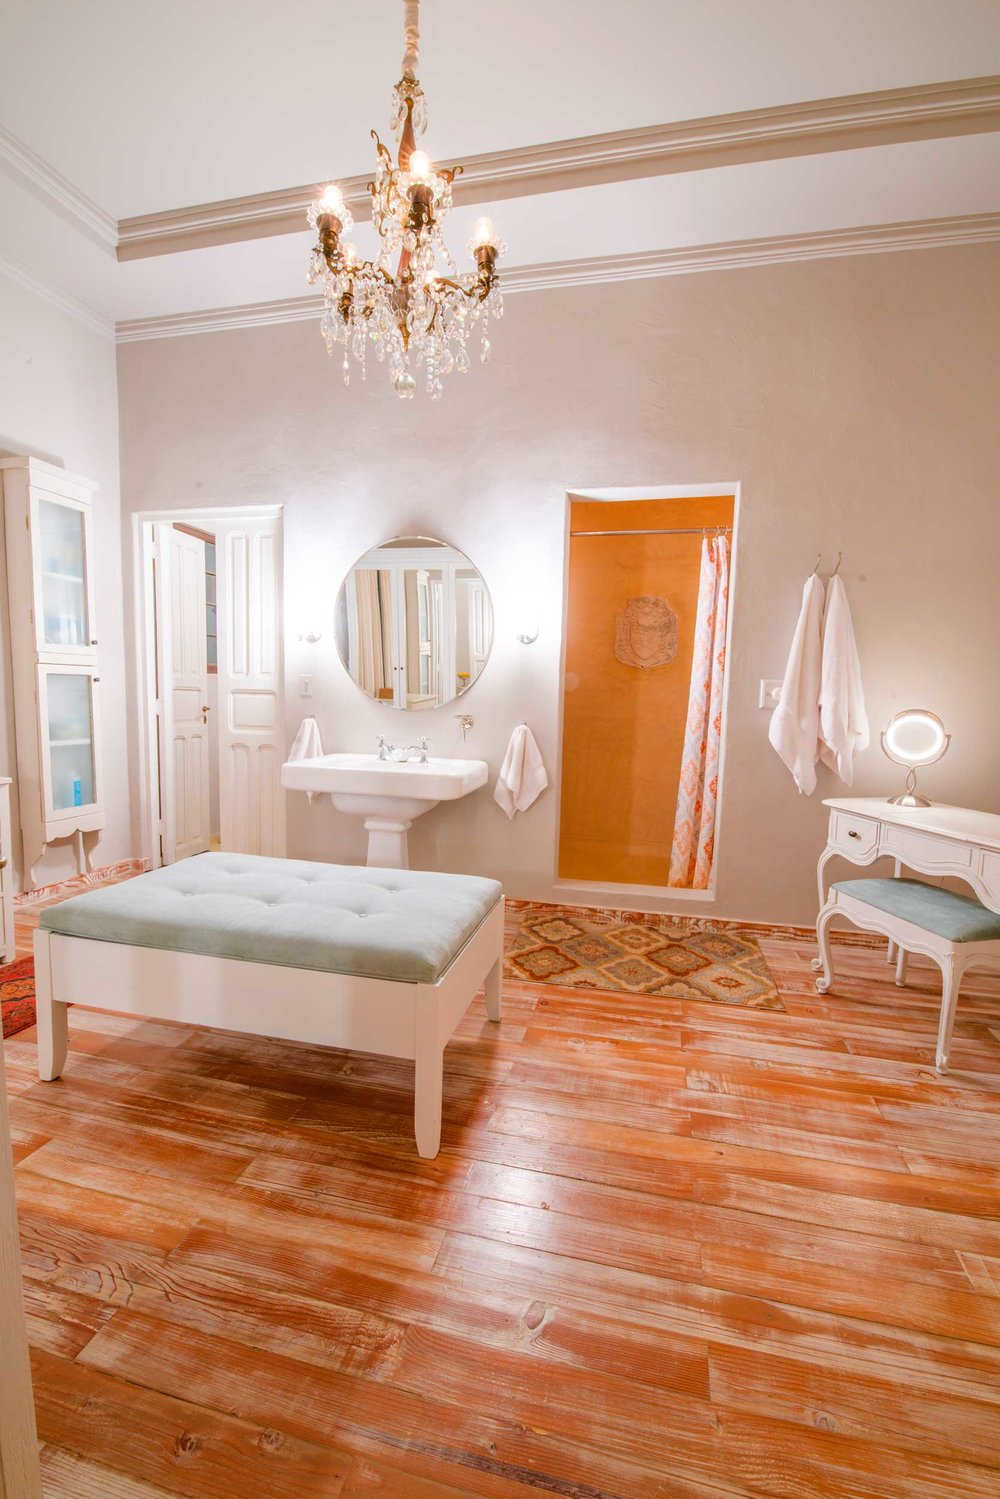 real-estate-phography-mexico-pastel-bathroom.jpg